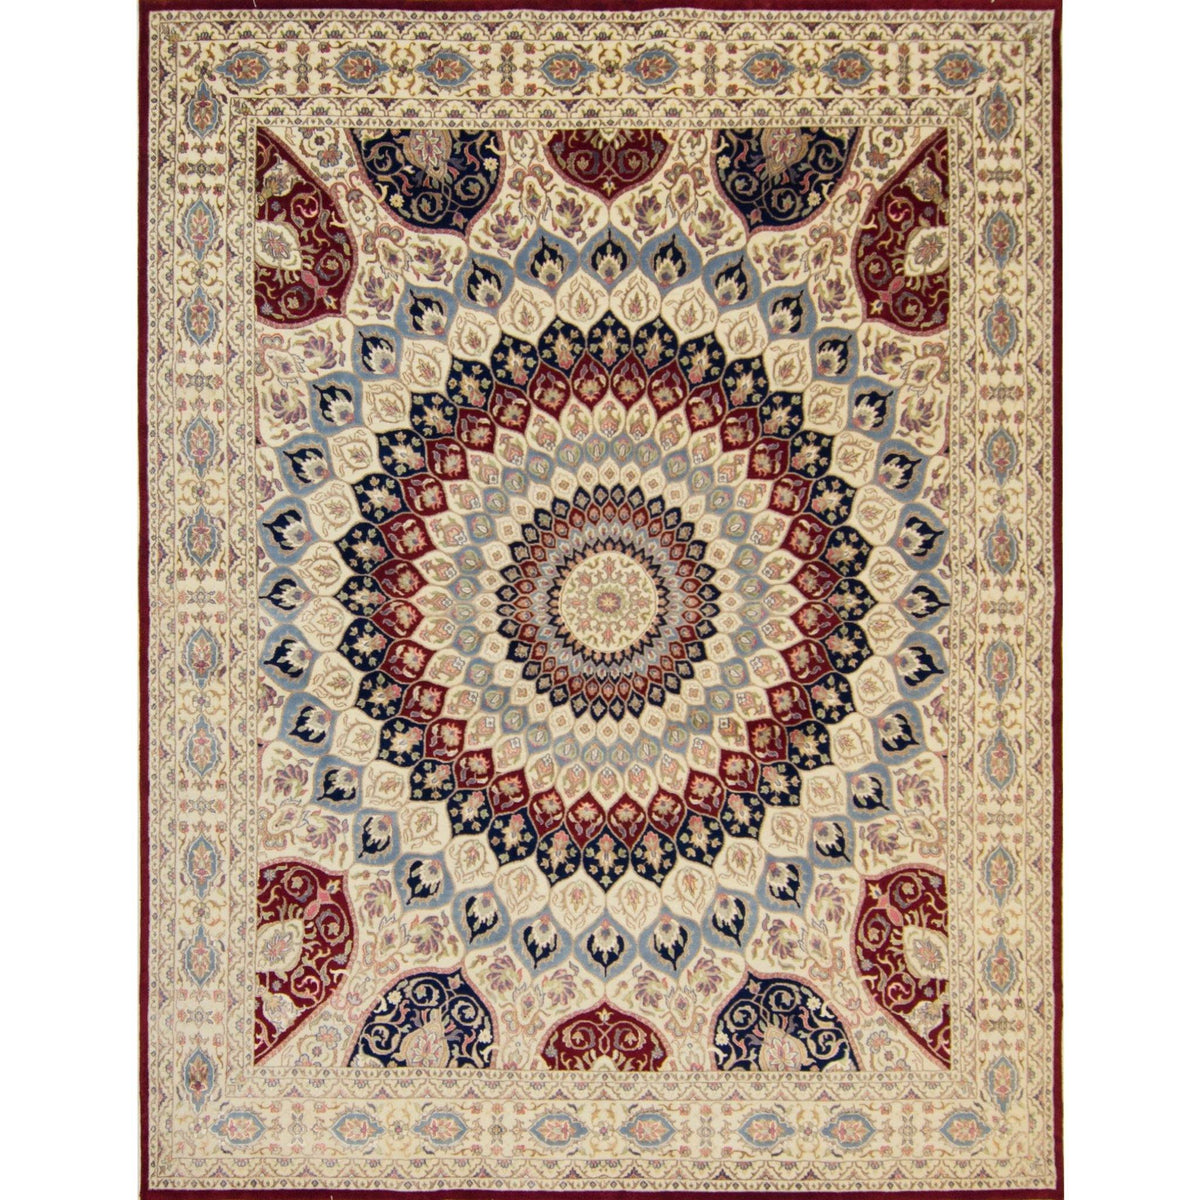 Tabriz Persian-Rug | House-of-Haghi | NewMarket | Auckland | NZ | Handmade Persian Rugs | Hand Knotted Persian Rugs